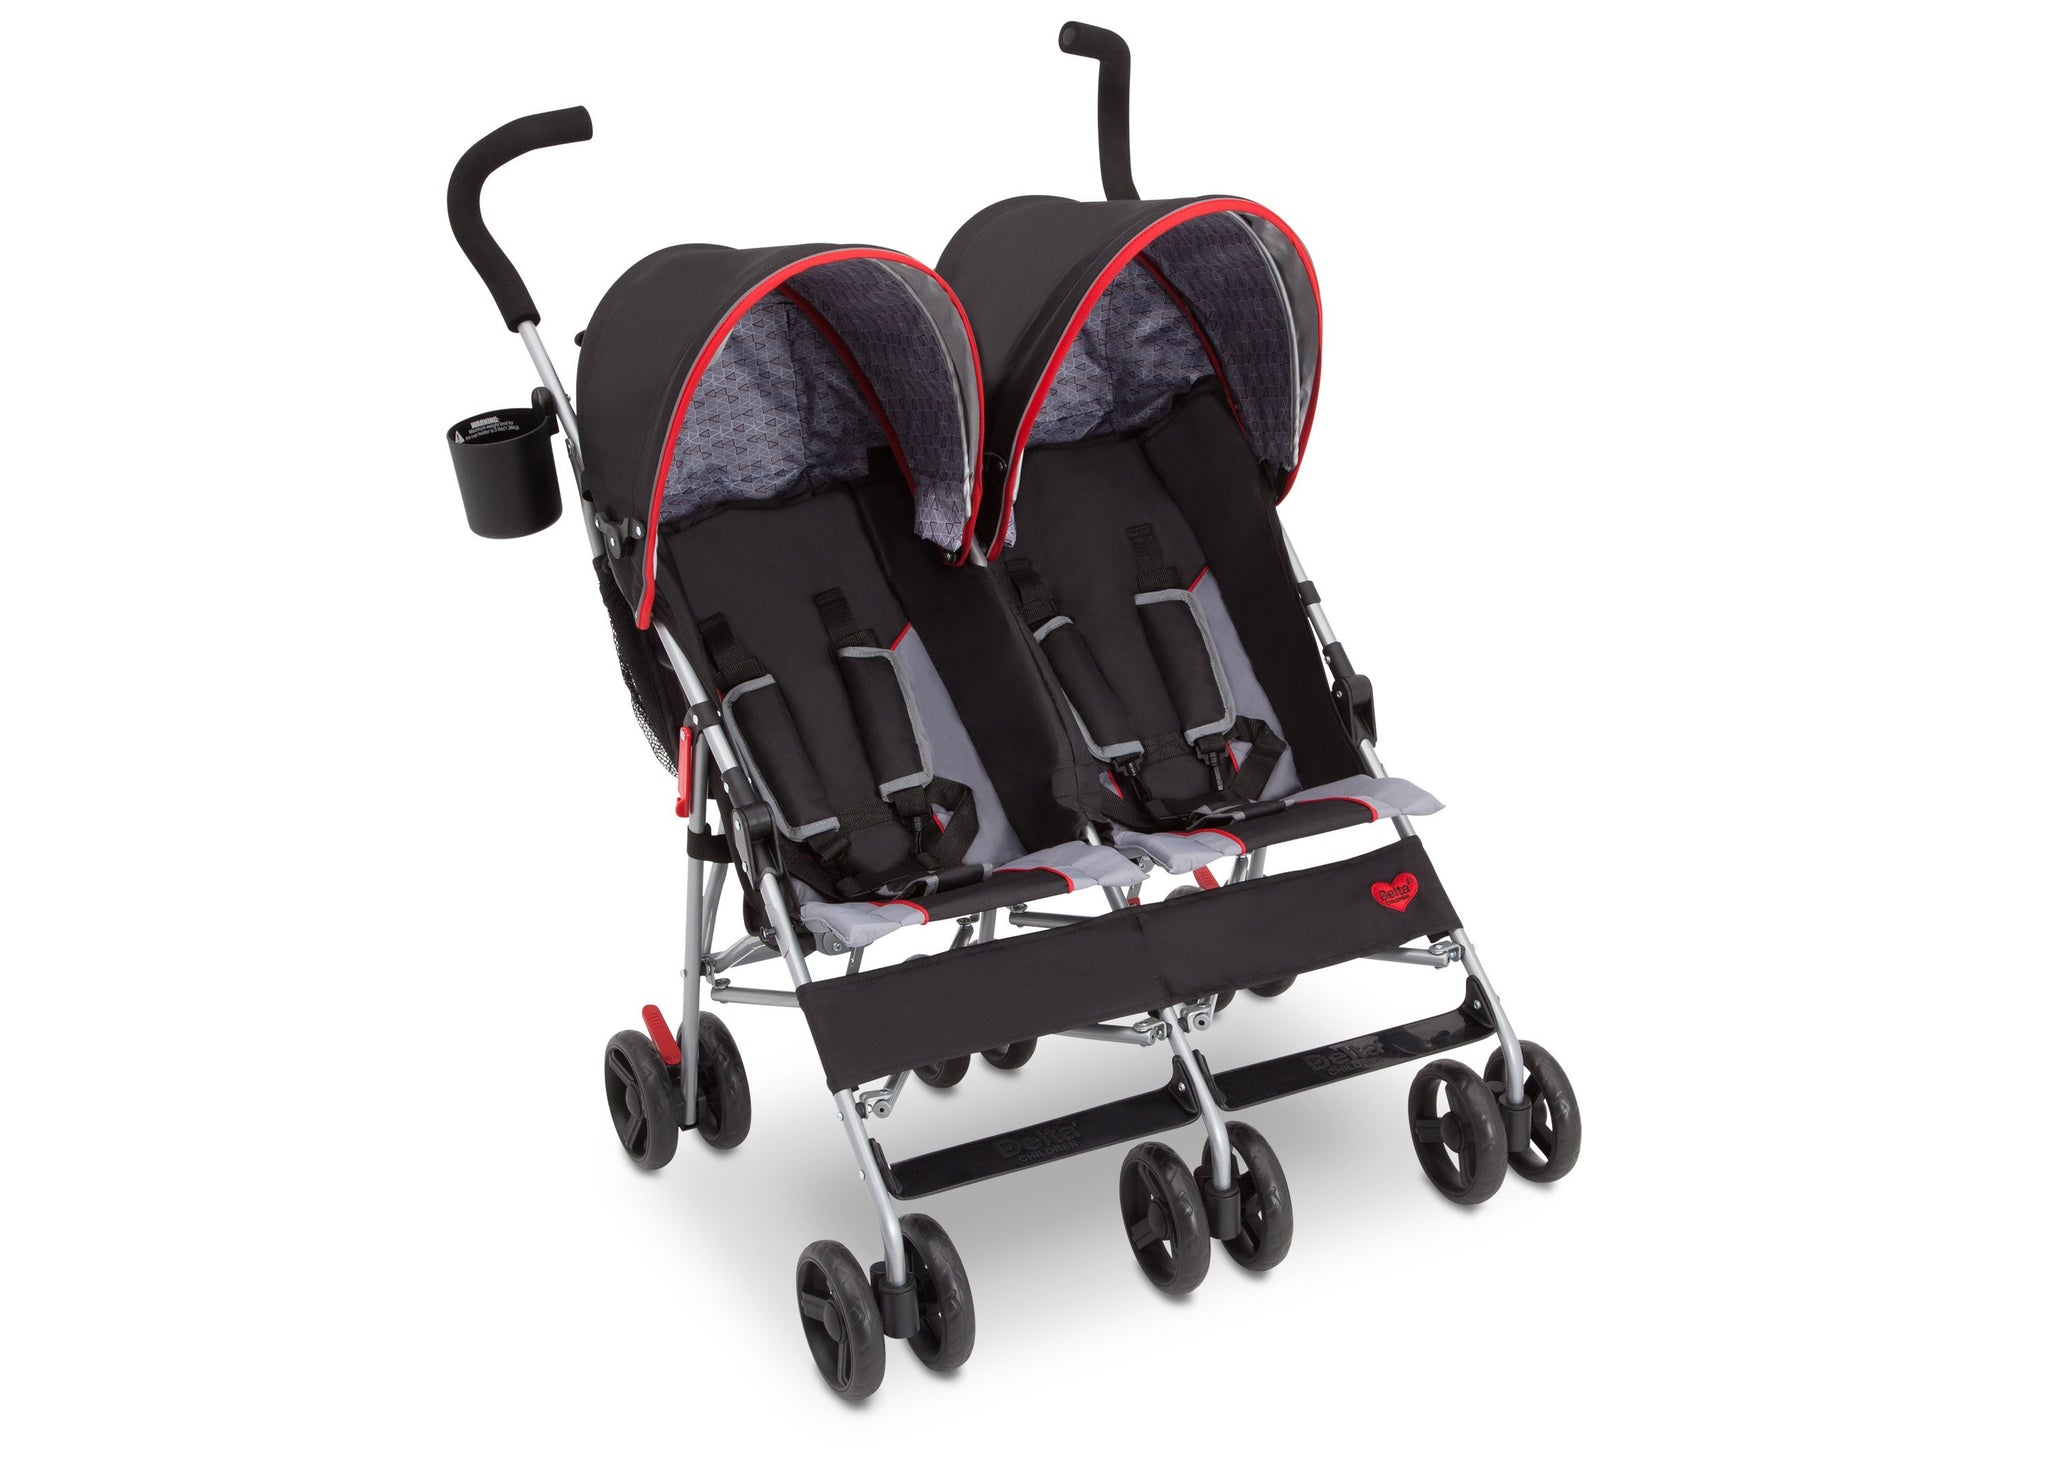 Delta Children Red Triangular (2246) LX Plus Side x Side Double Stroller (11709), Angled with Canopy, b1b